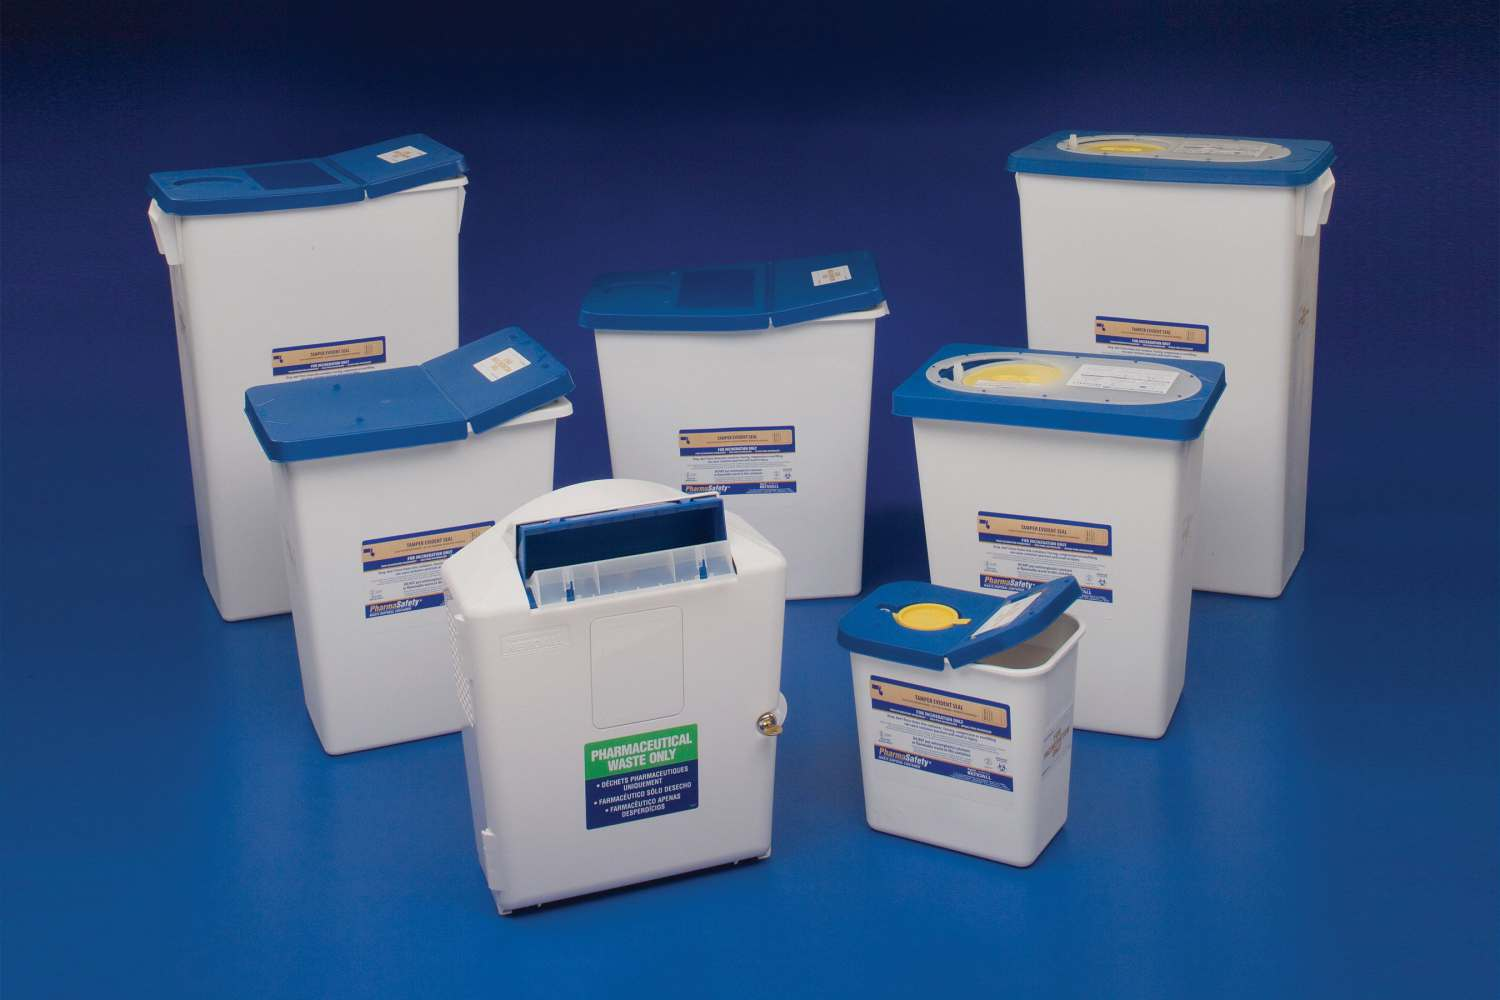 PharmaSafety Sharps Disposal Container - Waste, Pharmacy, 8Gal, Leak Resis, Box of 10 - Model 8850